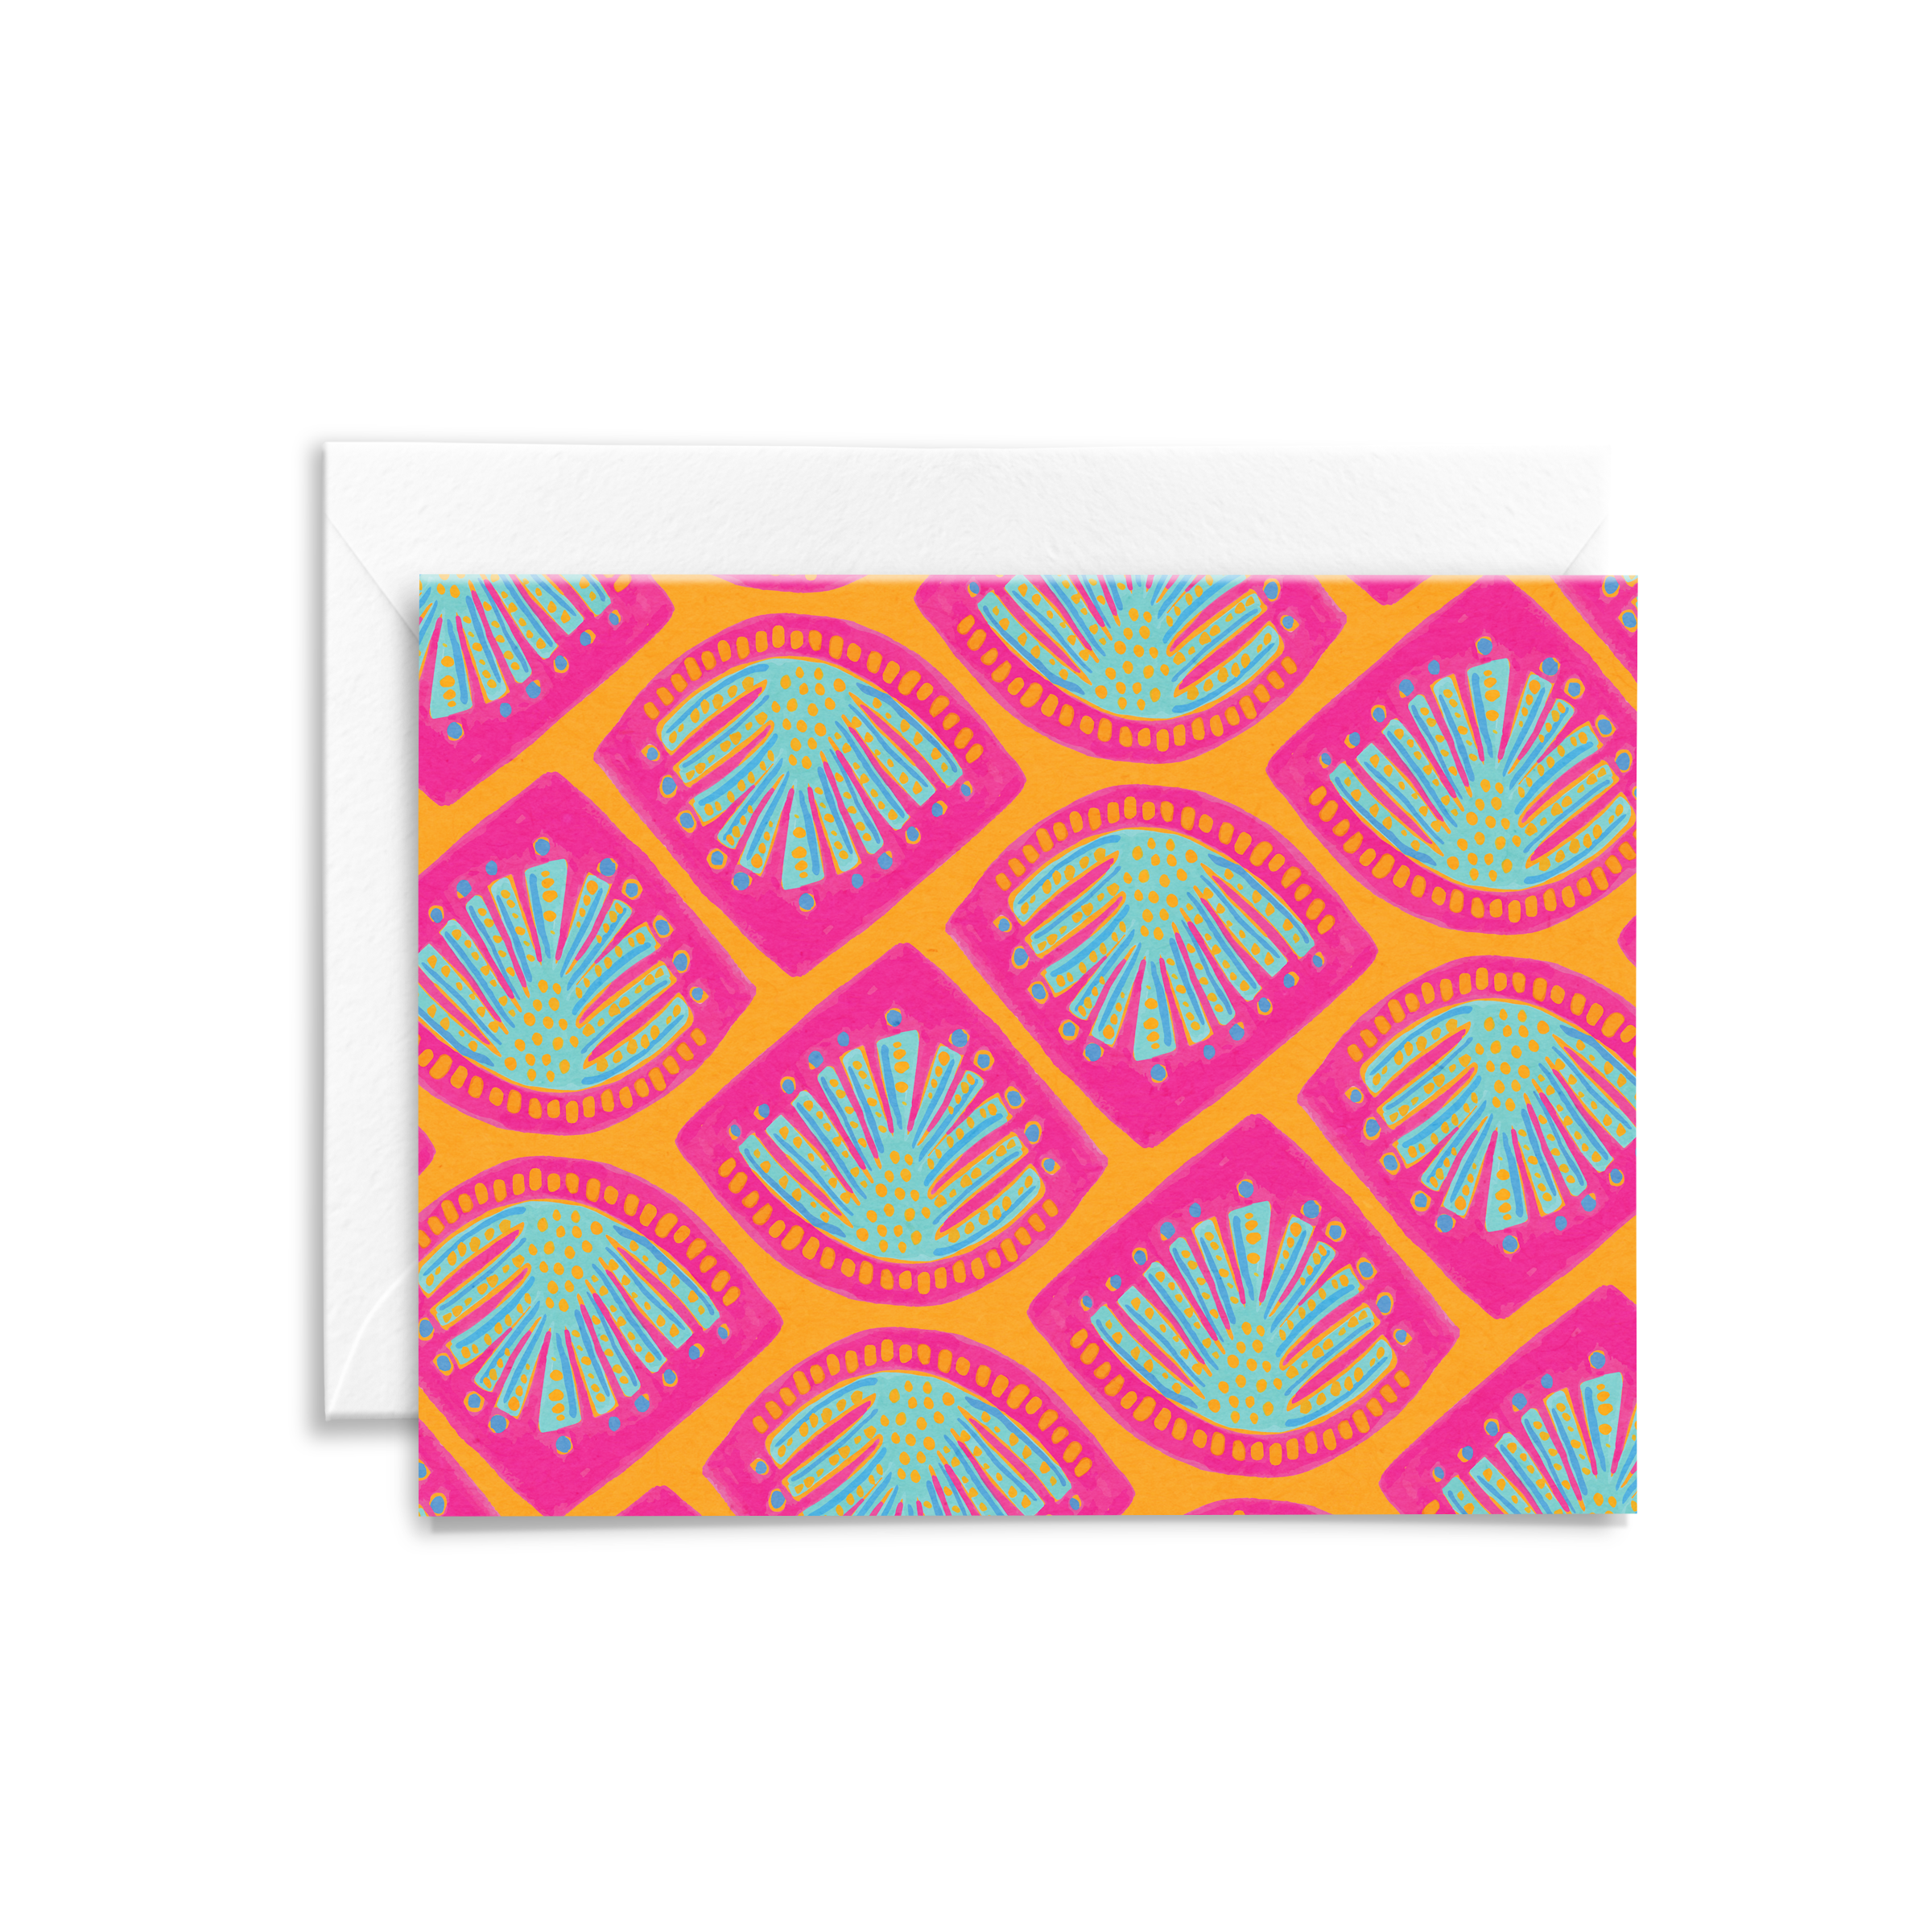 Eco-friendly stationery featuring an abstract monstera leaf pattern in bright pink and orange